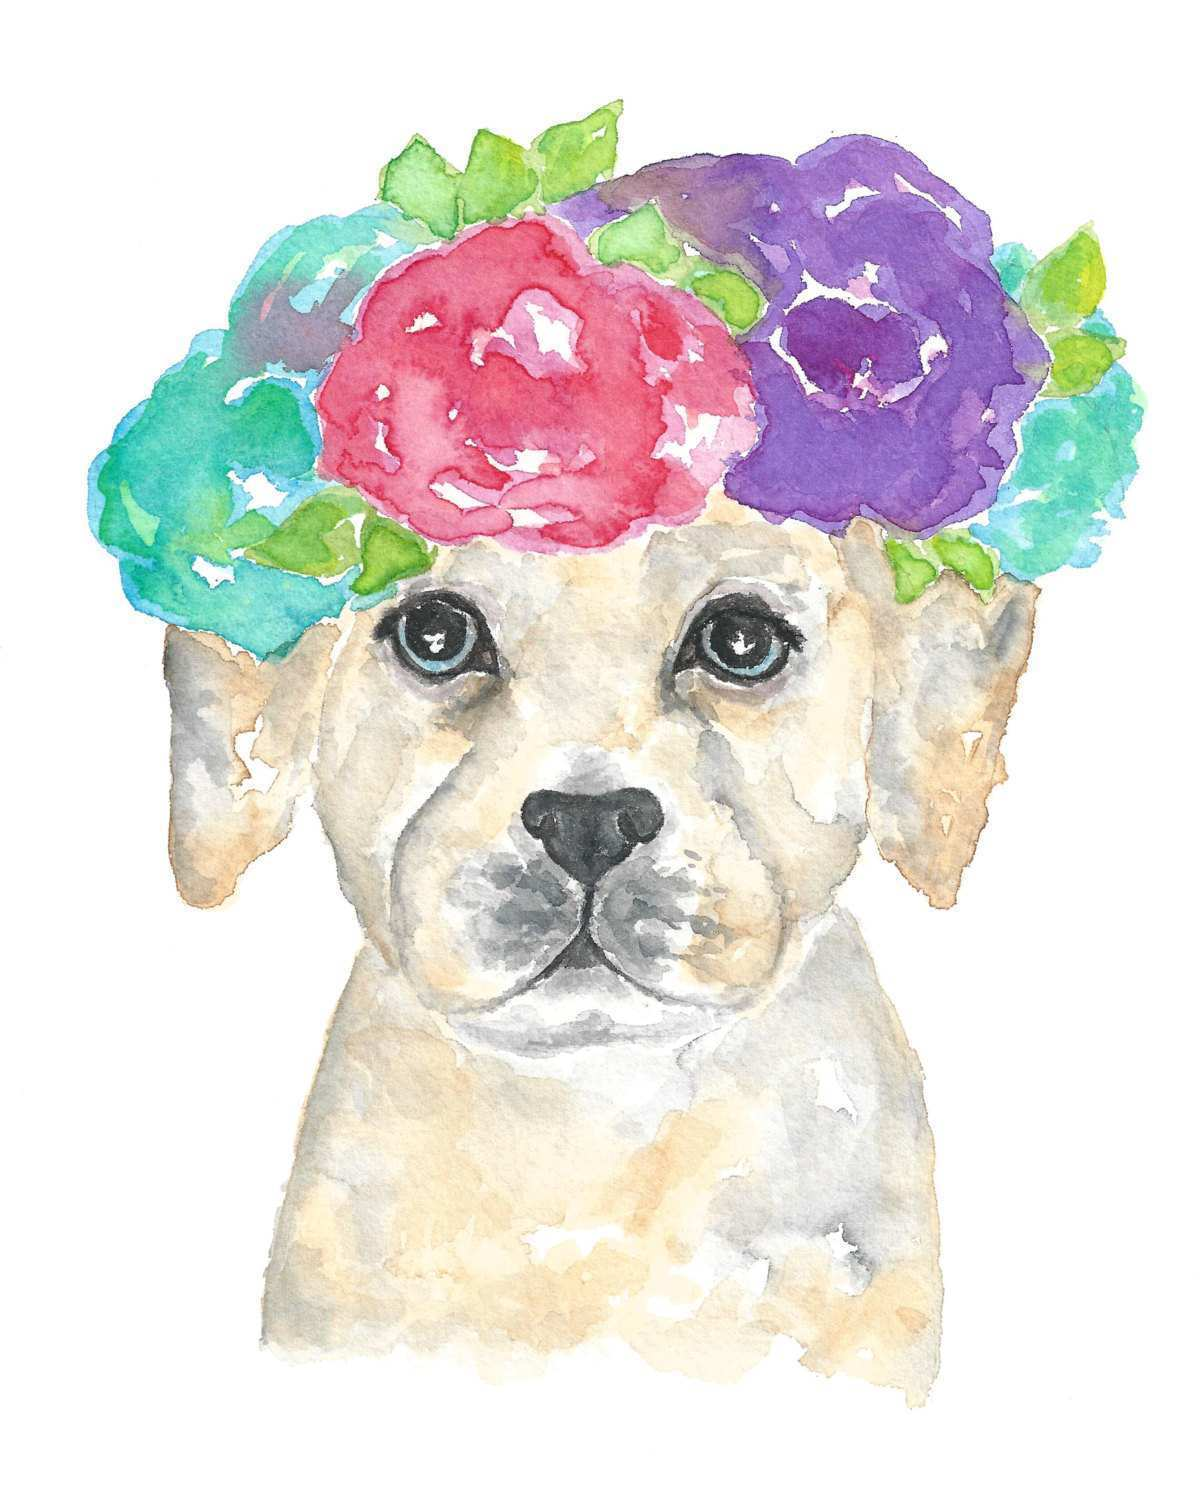 1200x1500 Puppy Painting Fresh Dog Print Dog Art Watercolor Dog Animal